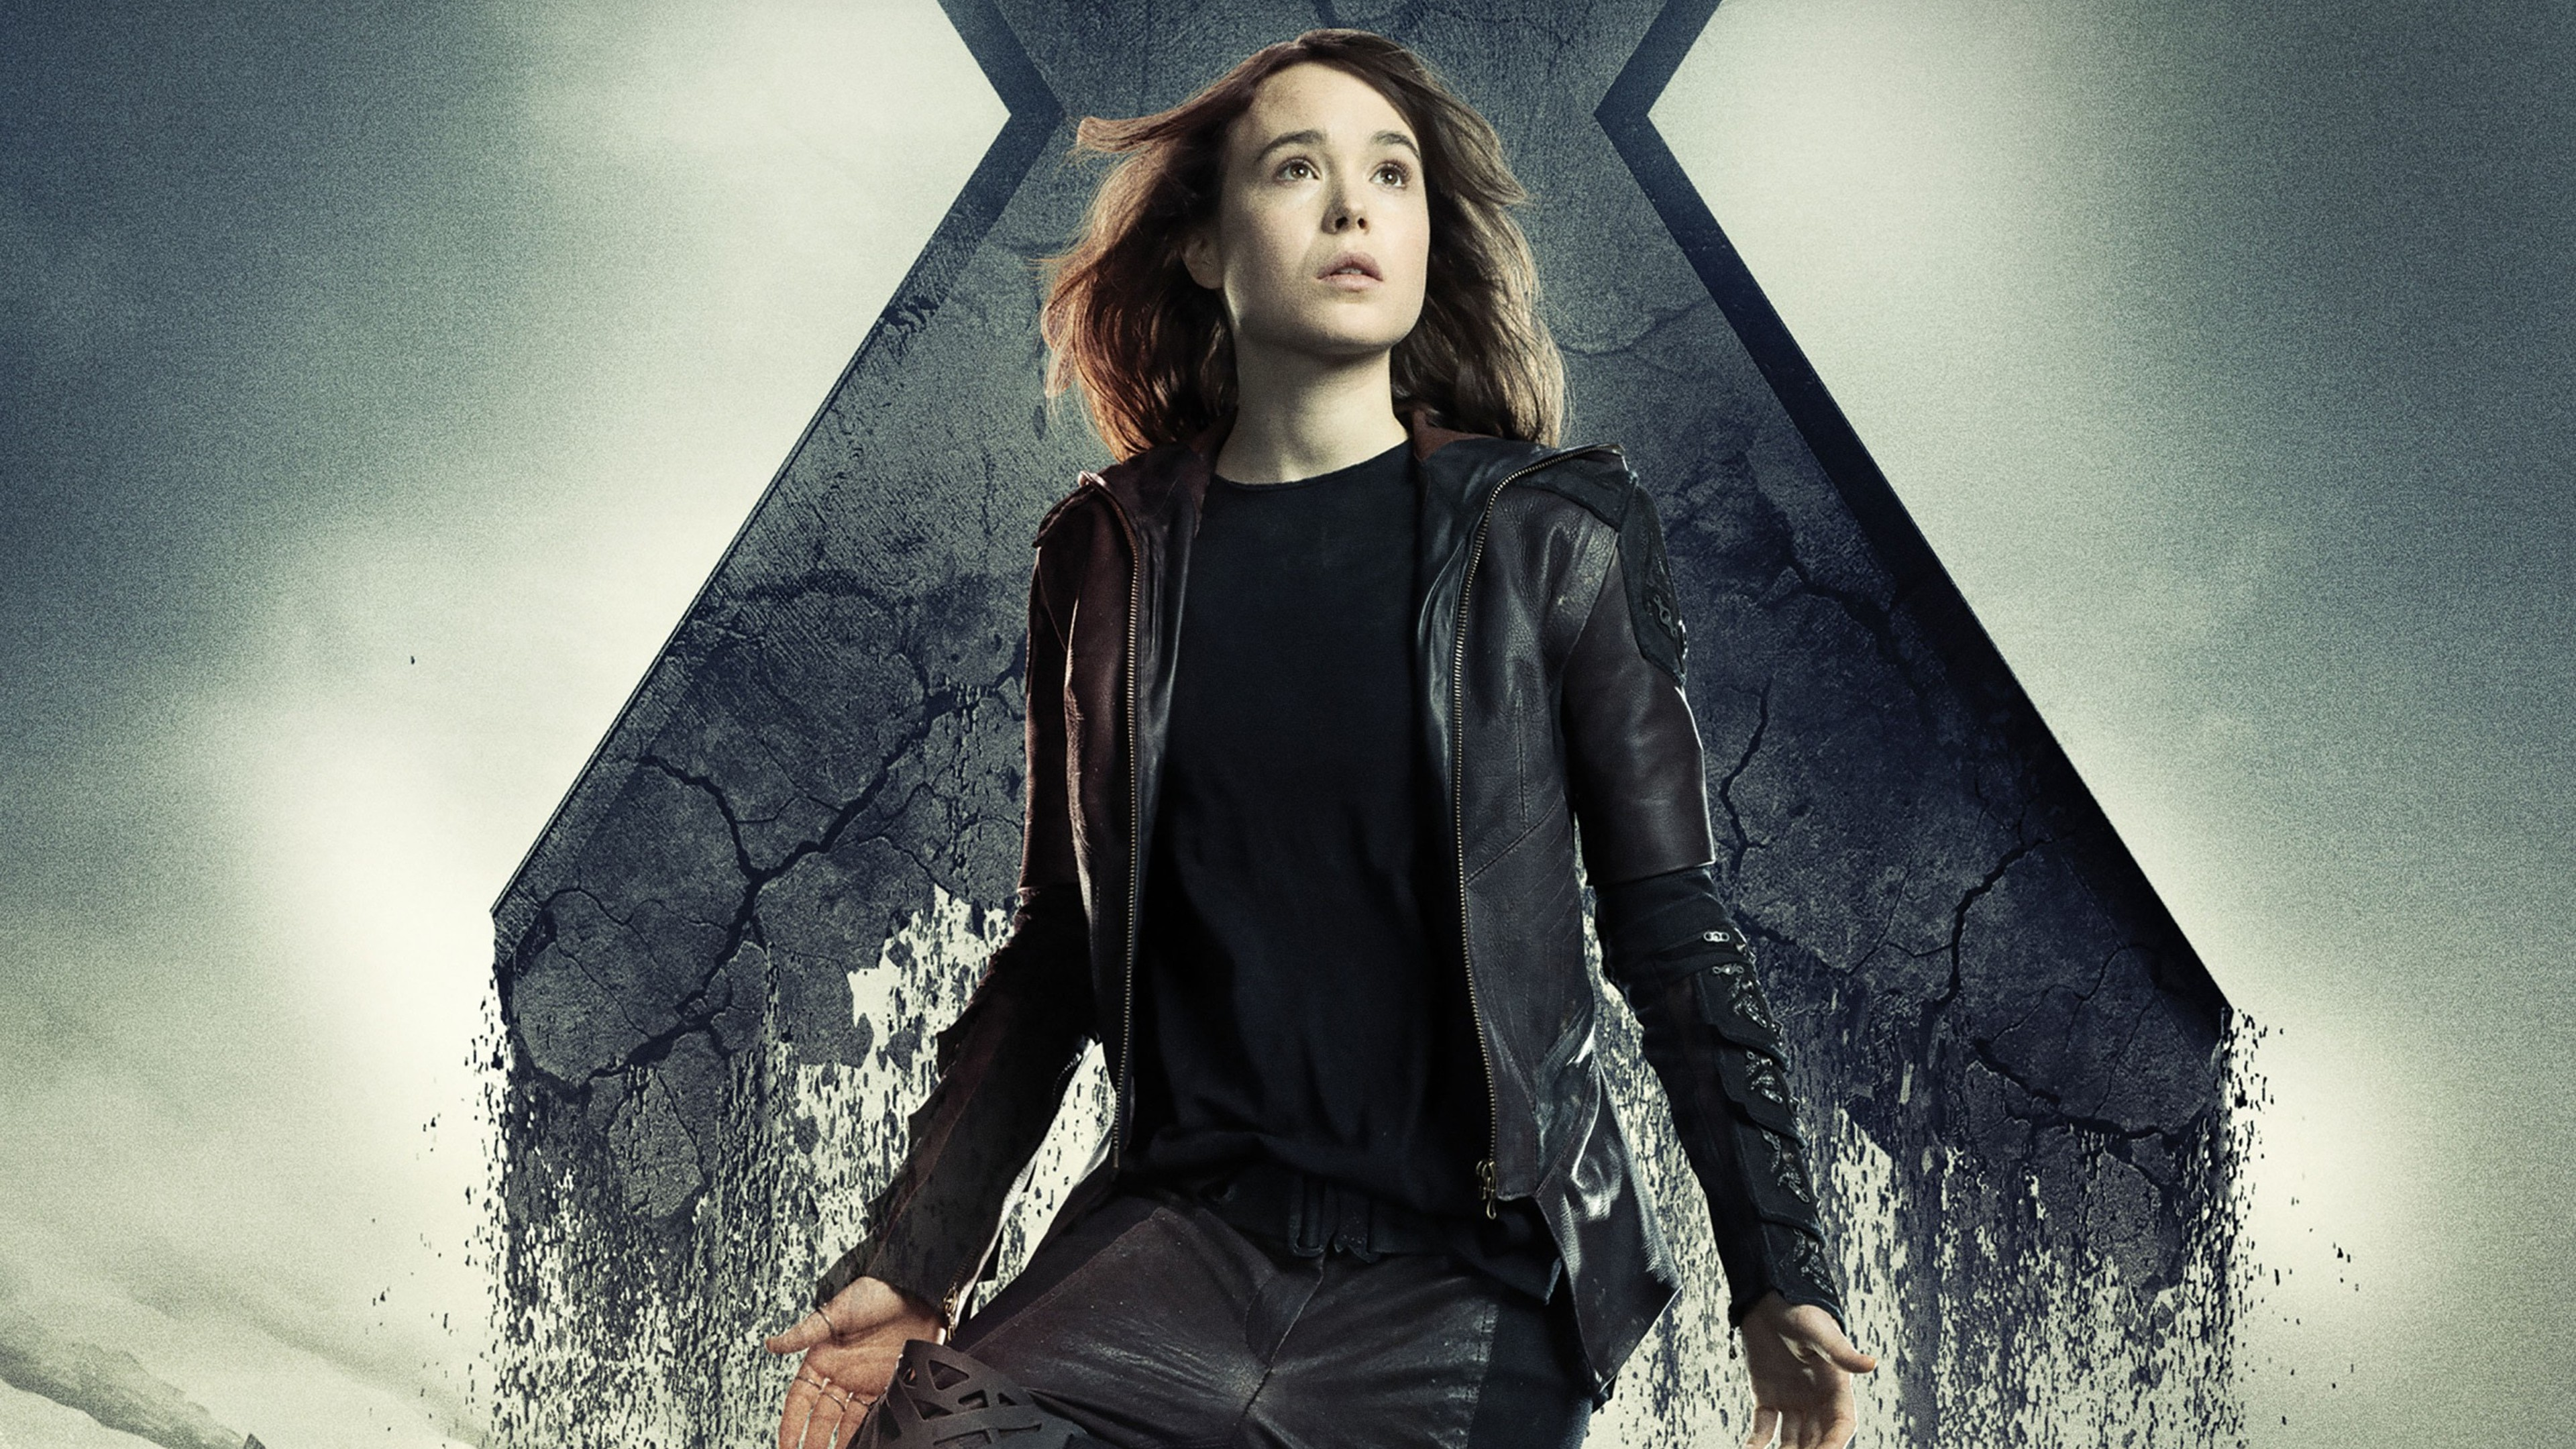 Ellen Page X Men Days Of Future Past Wallpaper | Movies HD Wallpapers Ellen Page